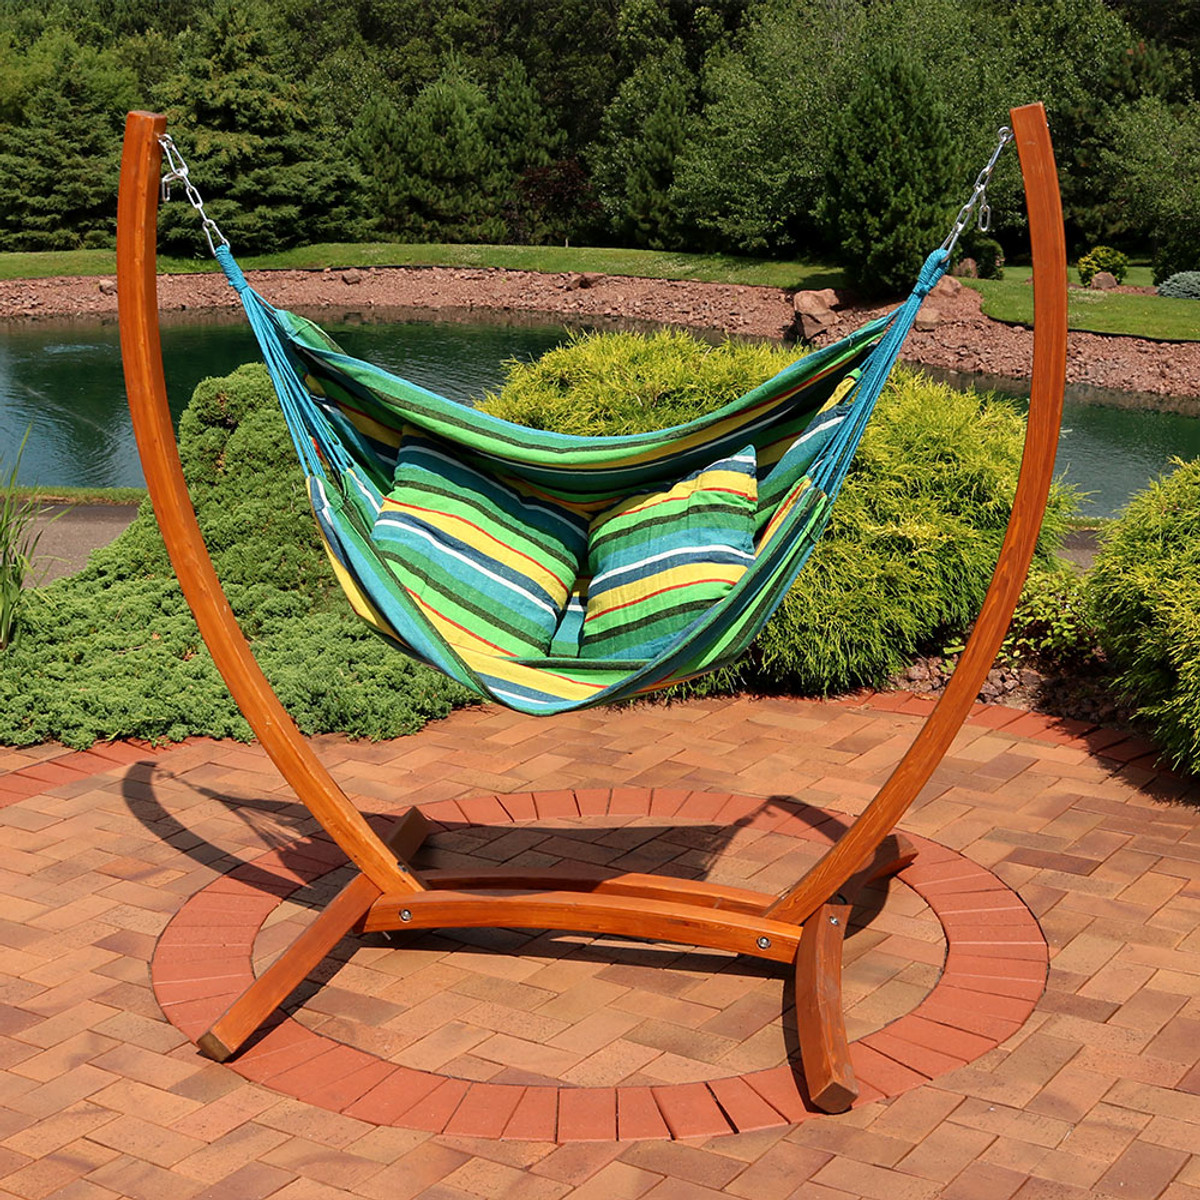 Sunnydaze Hanging Hammock Chair Swing with Sturdy Space ...